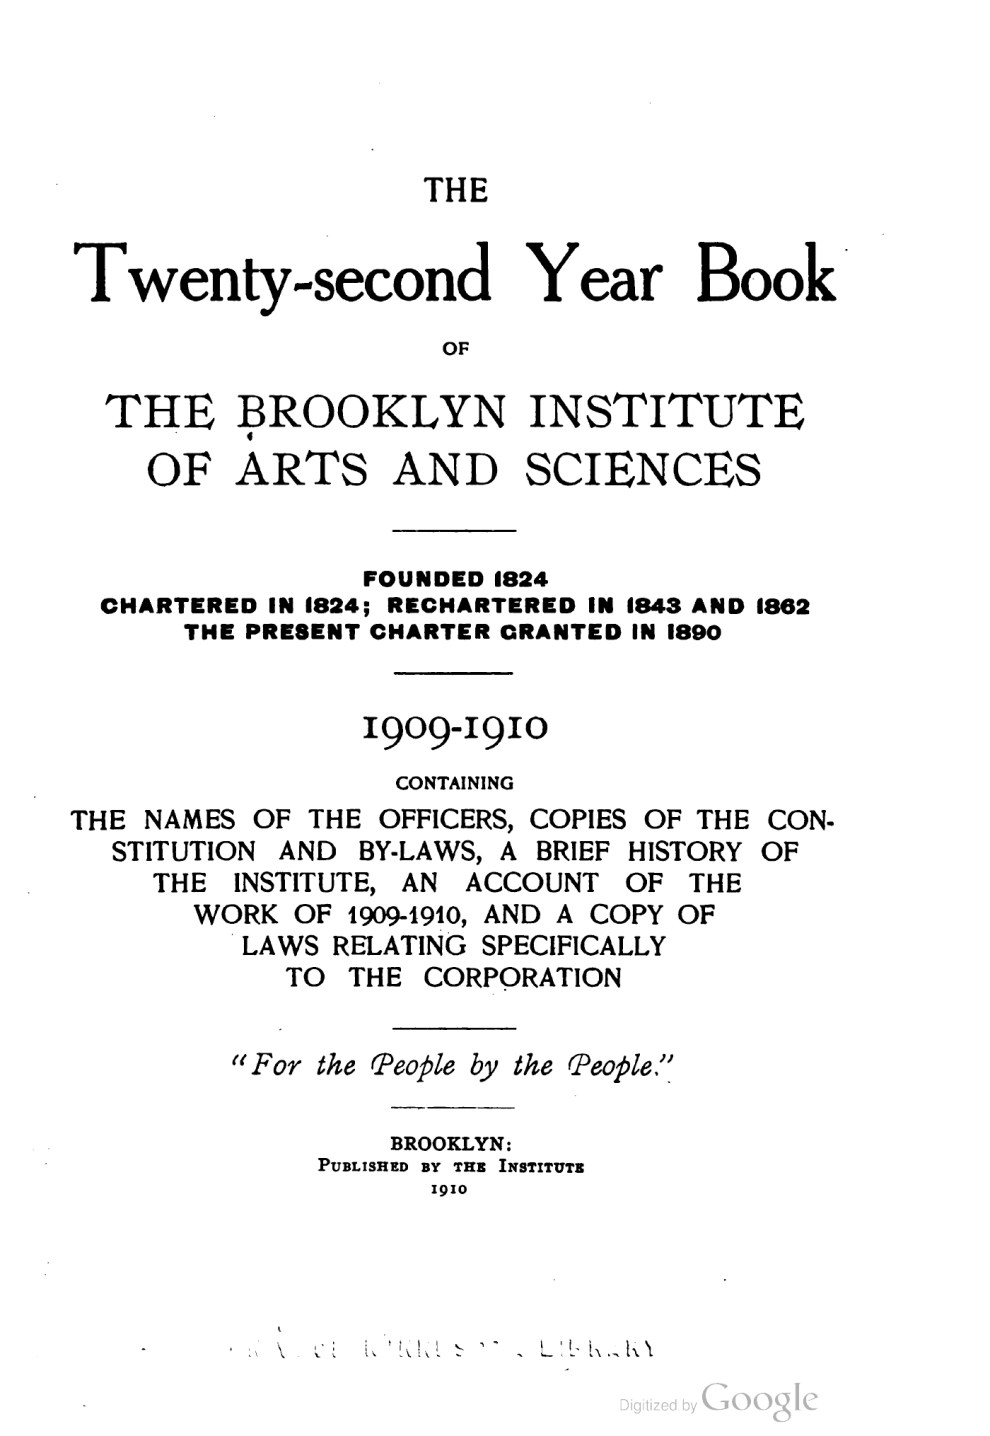 """The Twenty-second Year Book of The Brooklyn Institute of Arts and Sciences"" by The Brooklyn Institute of Arts and Sciences, Brooklyn, NY, 1909-1910, page 74, not illustrated"